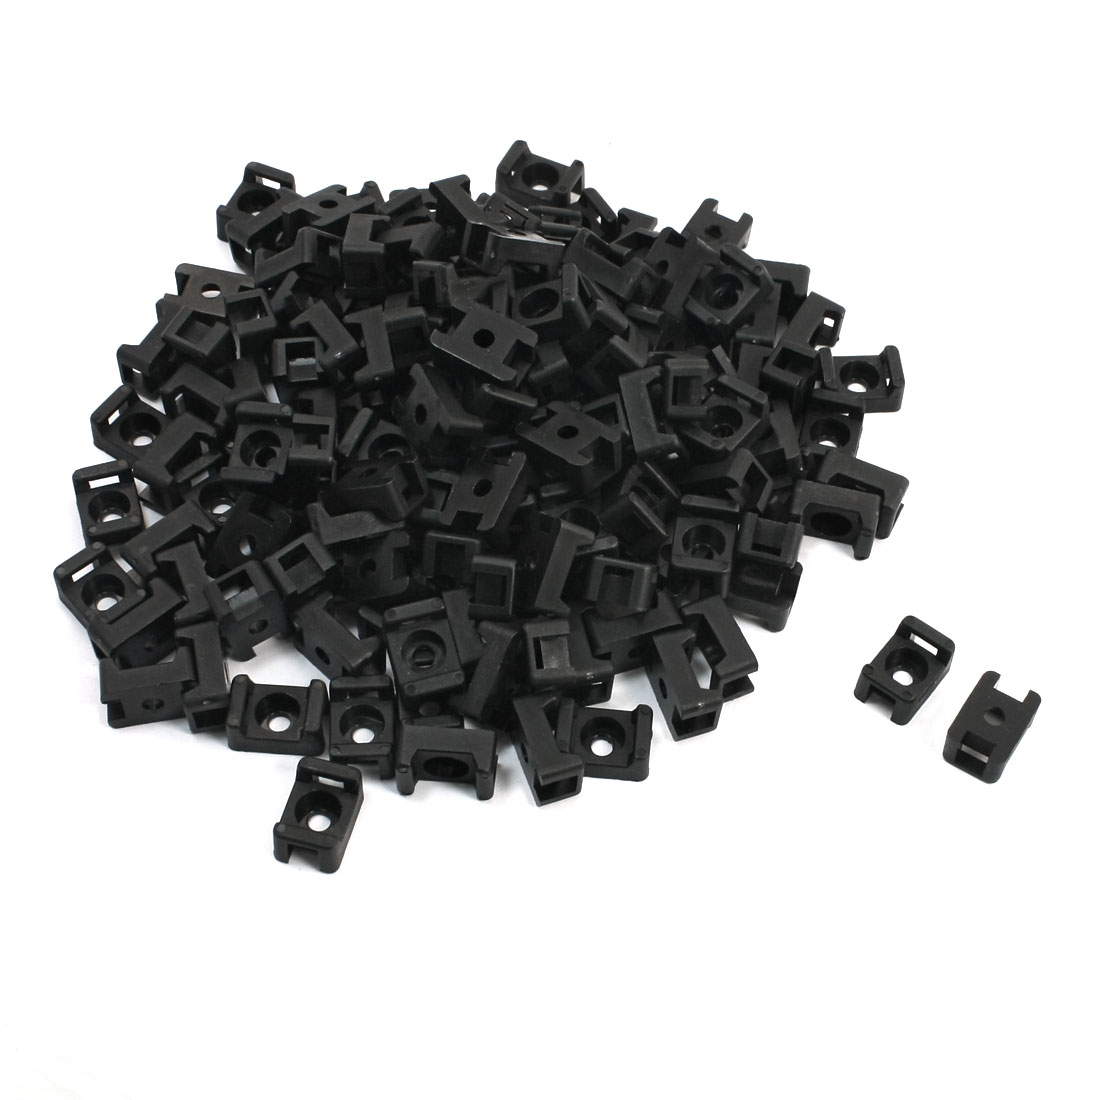 5mm Max Tie Width Plastic Cable Mount Saddle Base Holder 150 Pcs